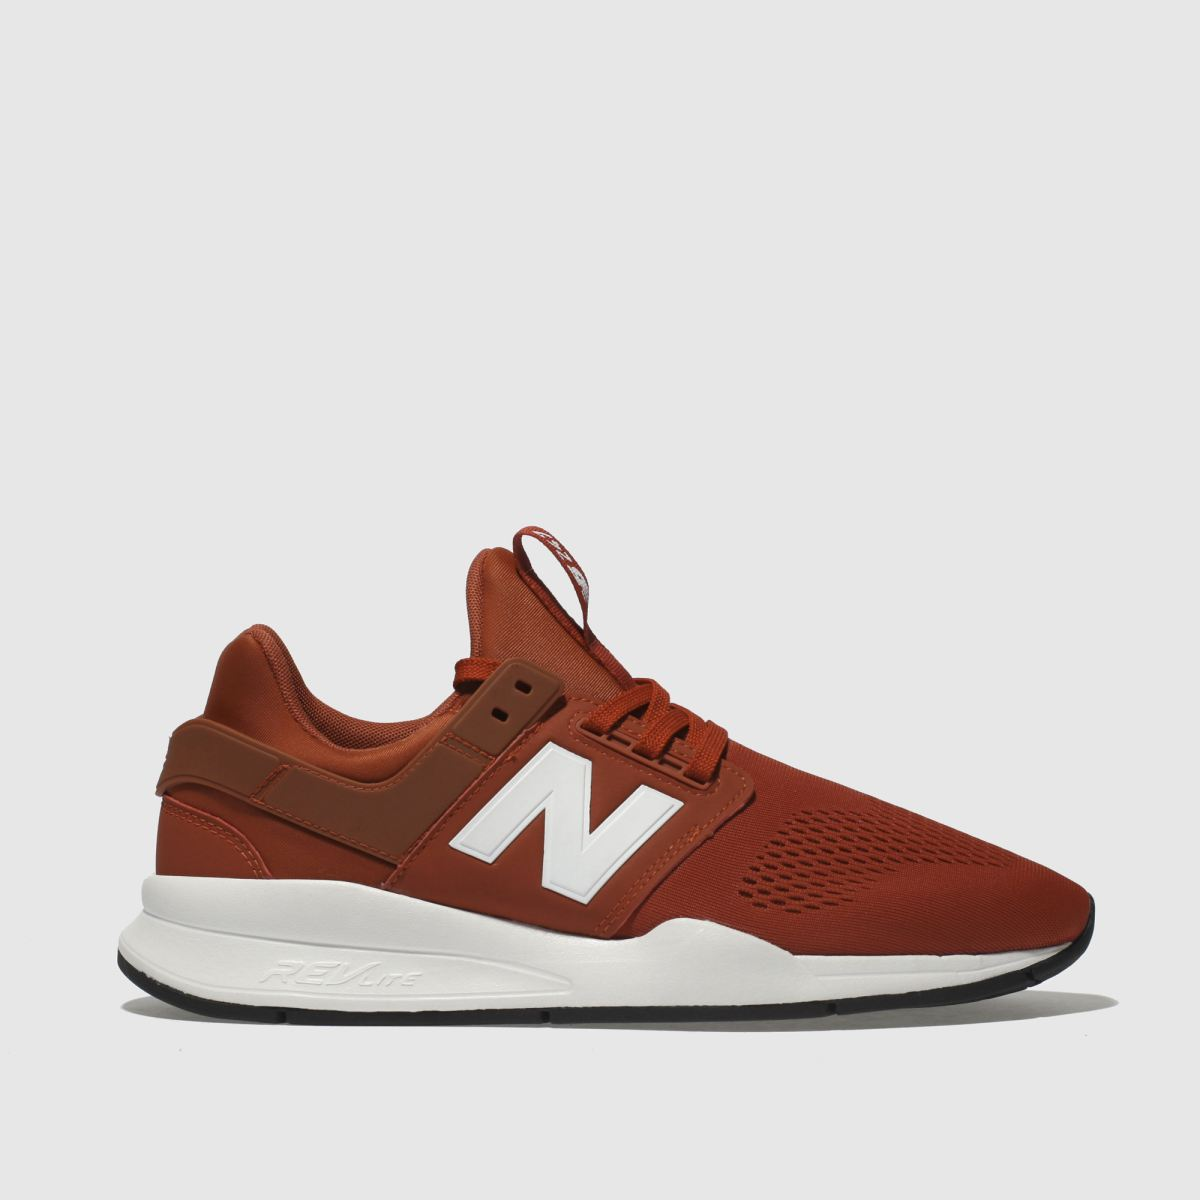 New Balance Orange 247 V2 Trainers